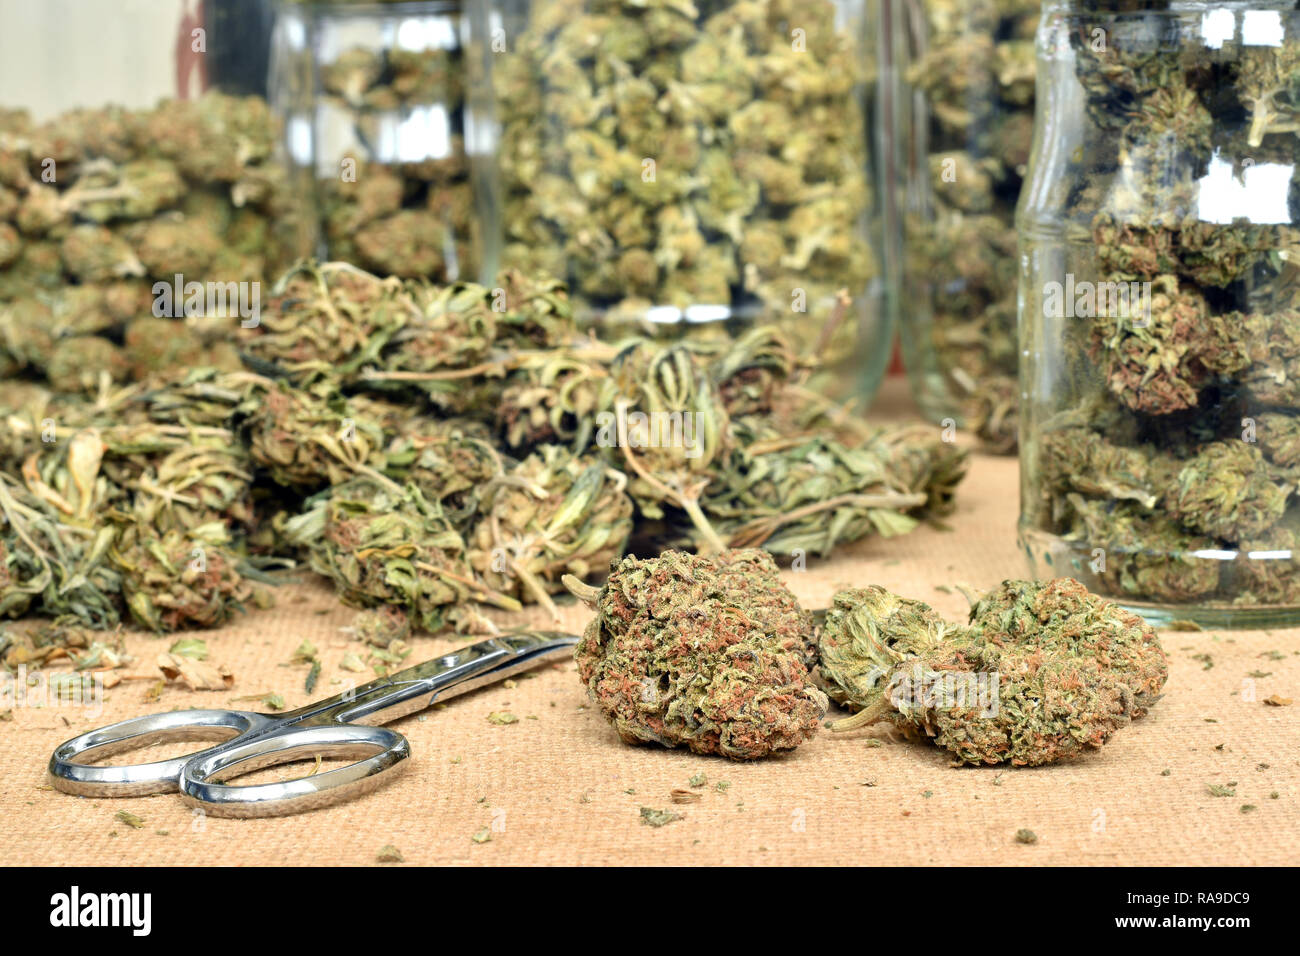 Trimming of cannabis buds and storing them in a glass jars - Stock Image